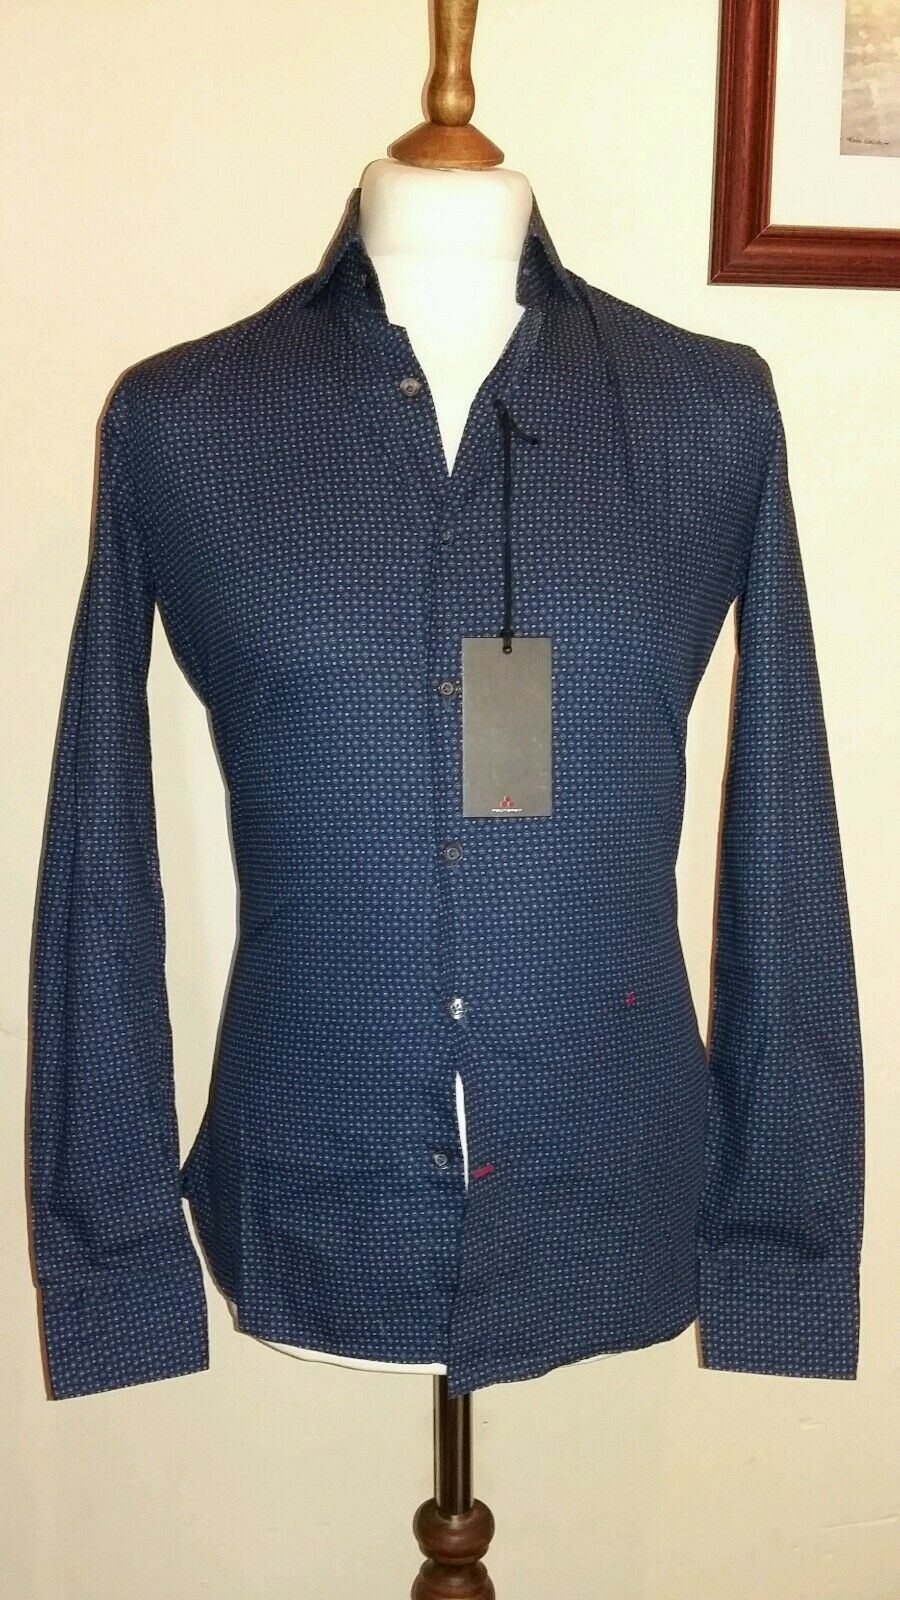 PEUTEREY Slim Fit Long sleeve Shirt Size Small